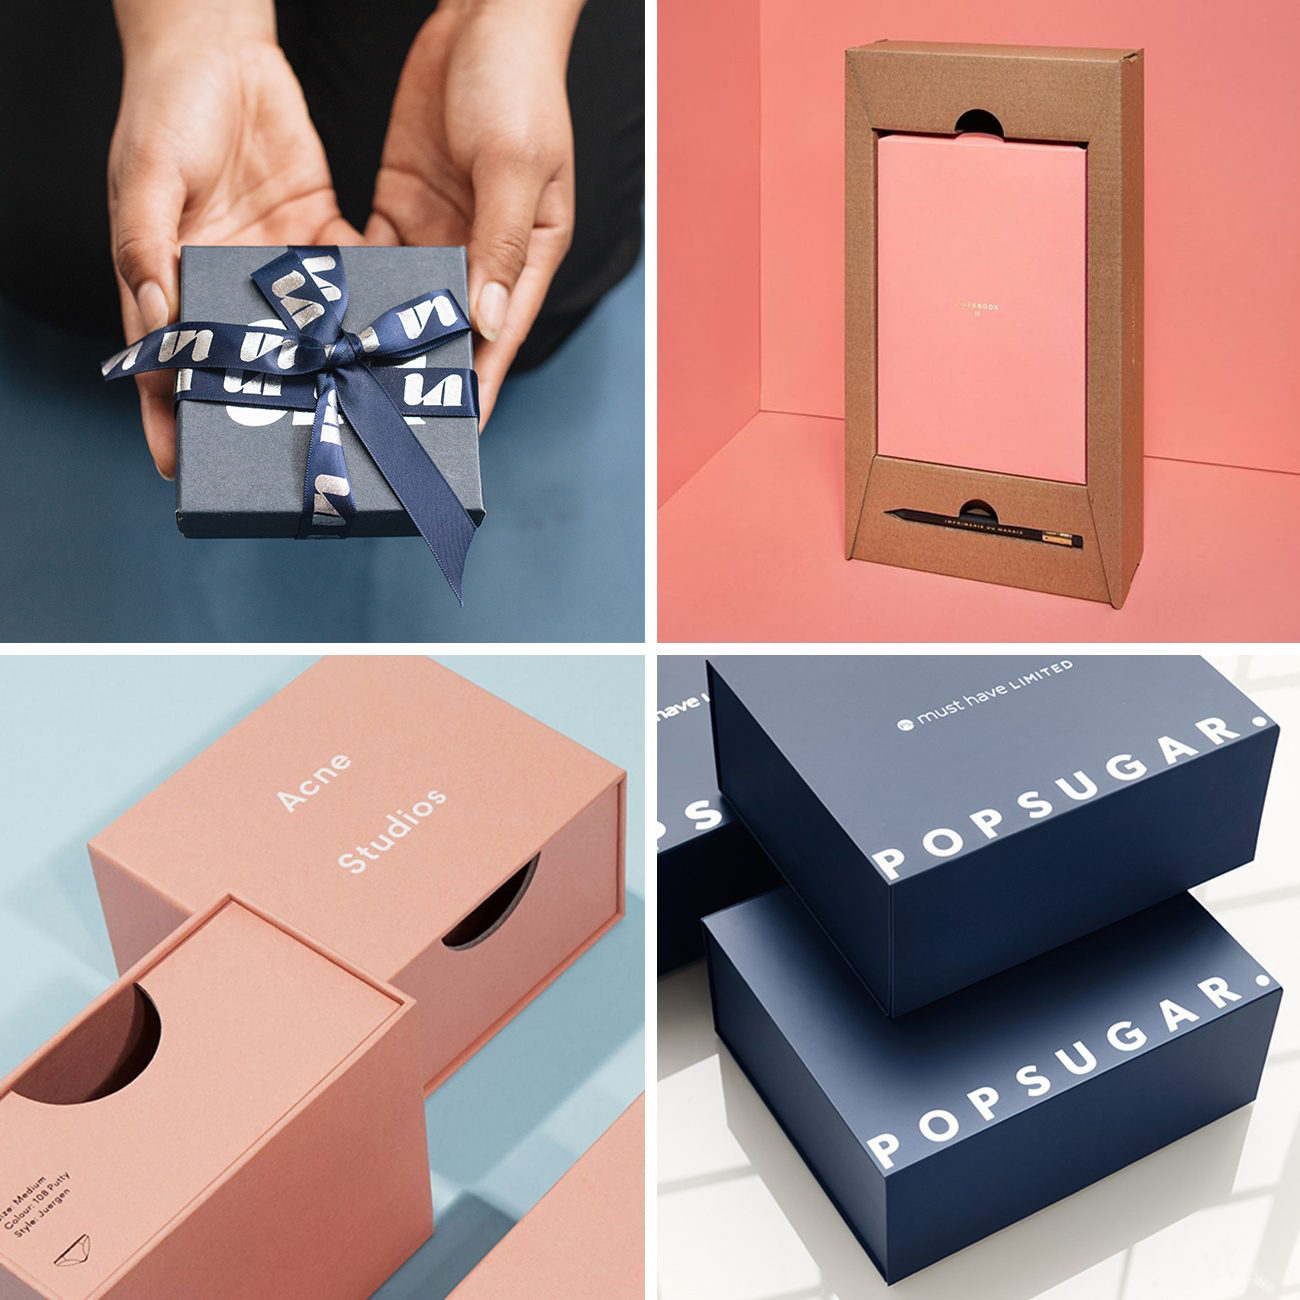 Photos via: Mary Rabun, Lumi, Acne Studios, Popsugar 90 Ideas to Spruce Up Your Holiday Packaging Design